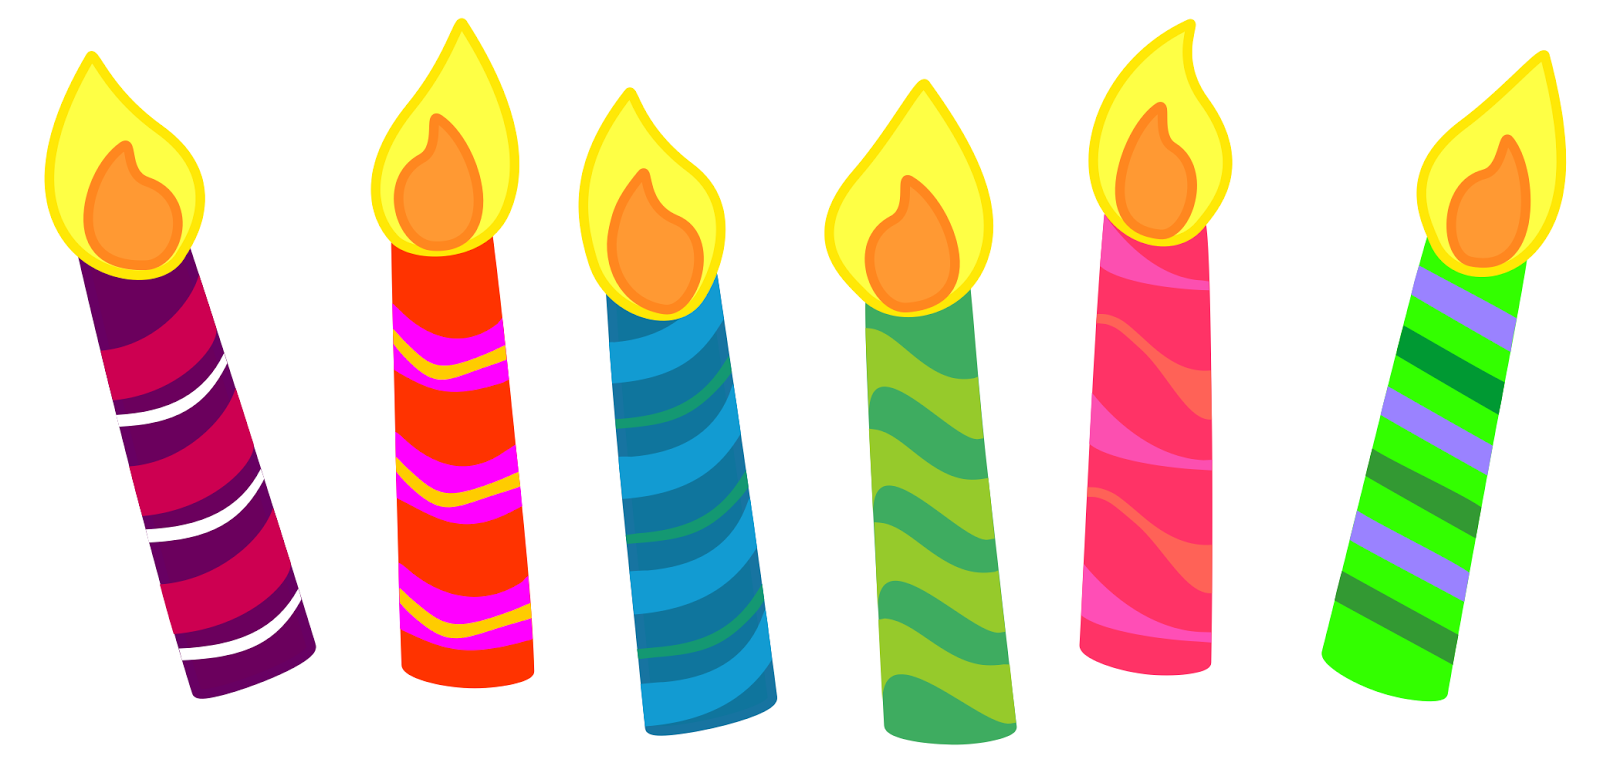 Candles clipart. Free large images cards